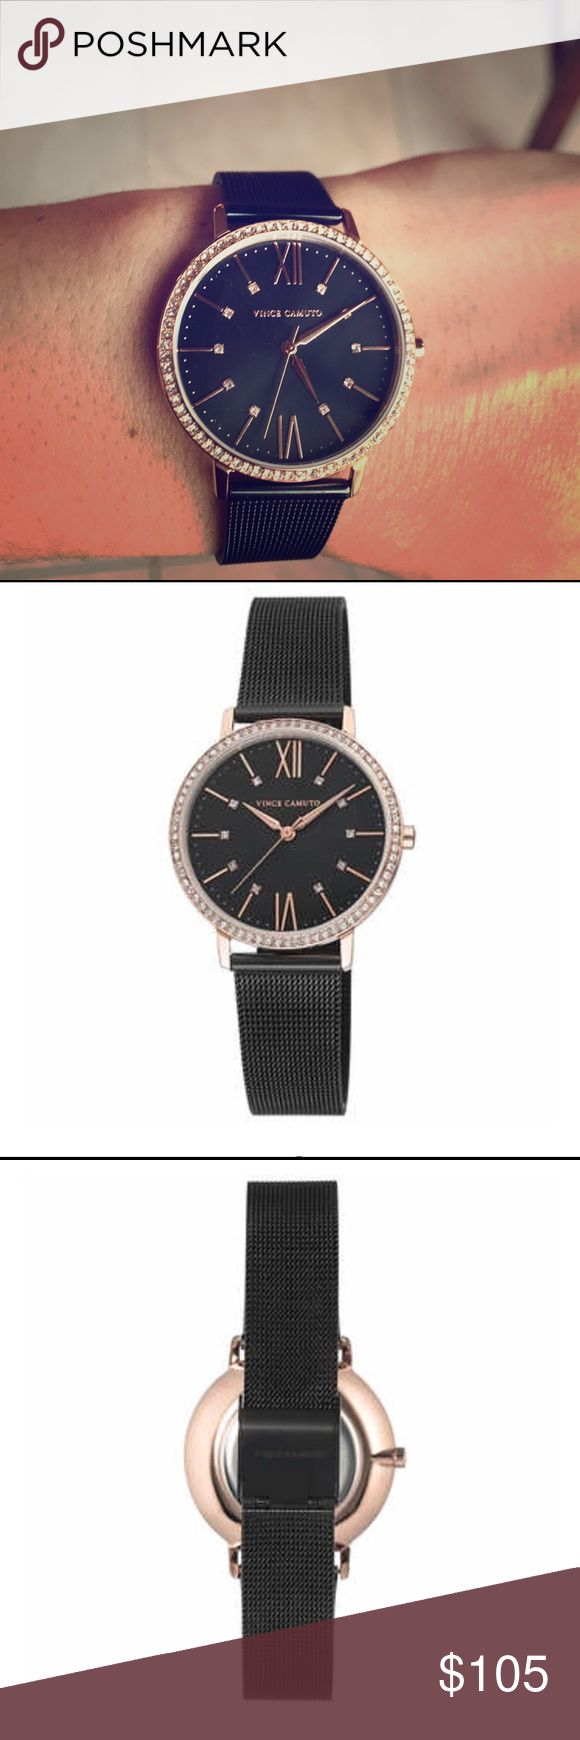 """Vince Camuto women's black rose gold Swarovski 100% AUTHENTIC  BRAND NEW PERFECT condition  No box  Brand: Vince Camuto Case Material: Stainless Steel Case Thickness: 6.5mm Case Width: 34mm Bezel: Rose Gold-Tone set with 72 clear Swarovski Crystals Movement: Japanese Quartz Crystal: Mineral Dial: Black Bracelet Material: Stainless Steel Mesh Bracelet Width: 16mm Bracelet Length: 8.5"""" Clasp: Hook Buckle Water Resistant: 100 feet (30M) Vince Camuto Jewelry"""